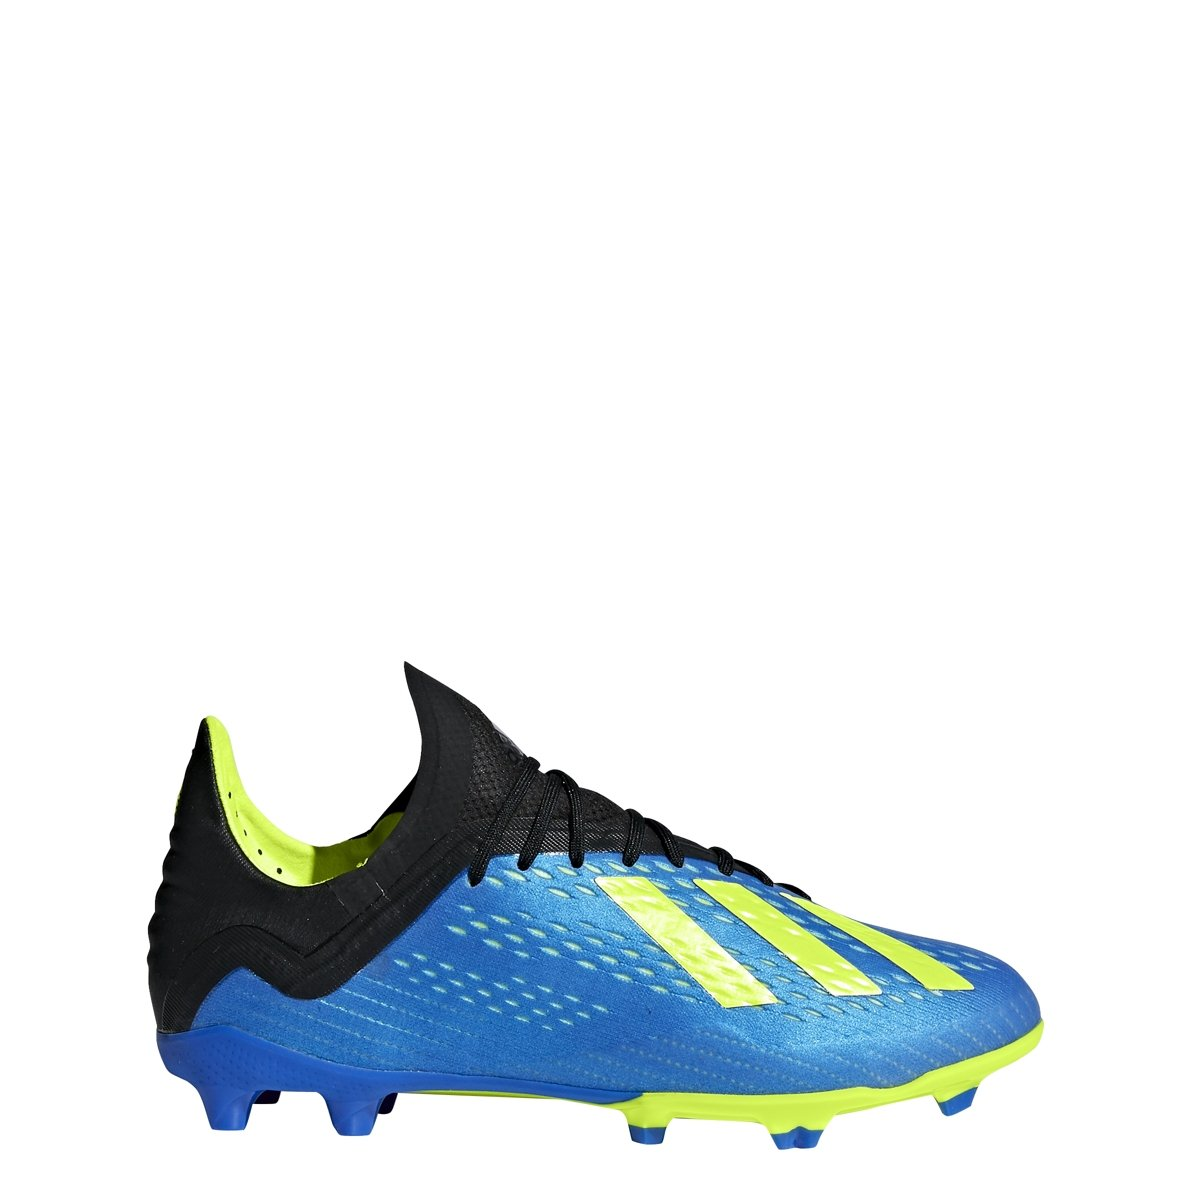 adidas X 18.1 Kid's Firm Ground Soccer Cleats (2.5) Blue/Yellow